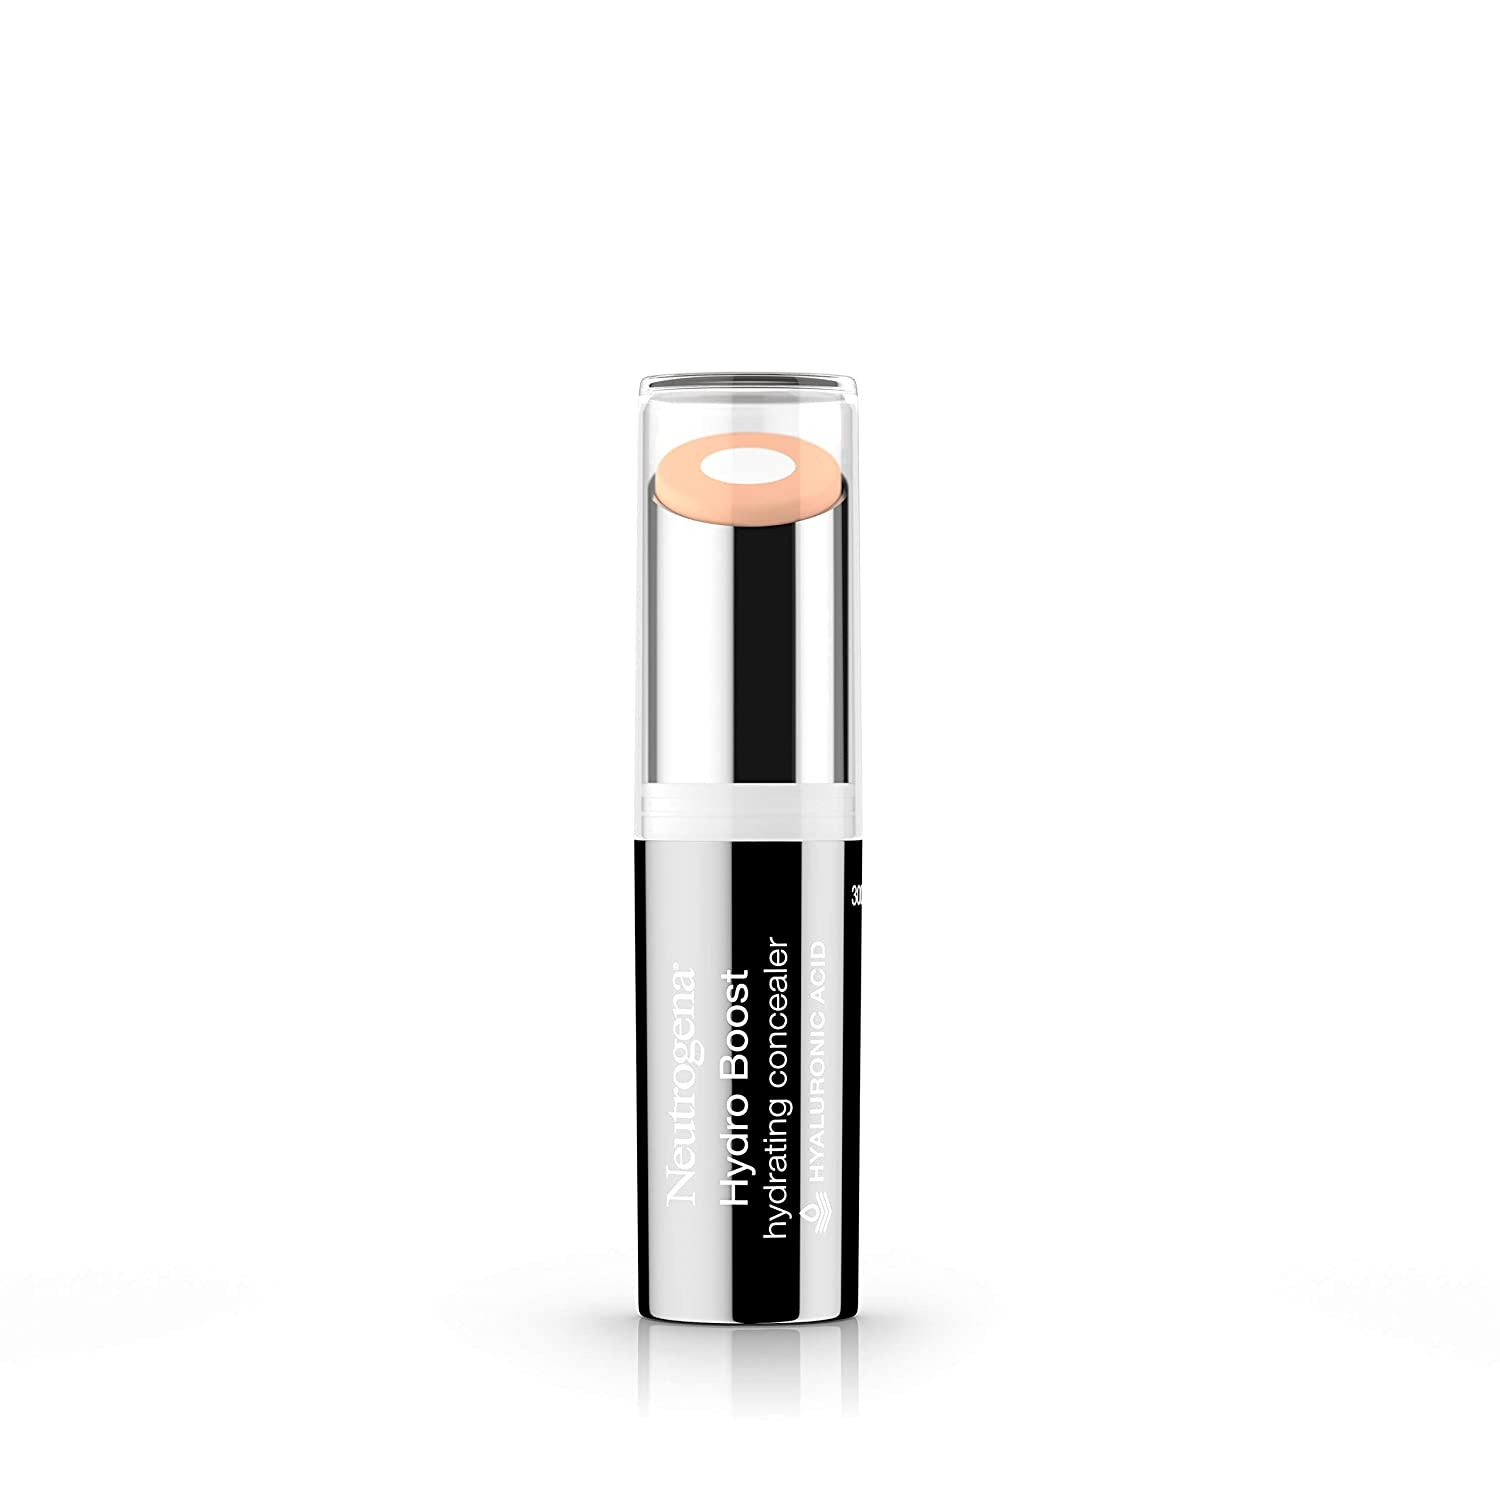 Neutrogena Hydro Boost Hydrating Concealer Stick for Dry Skin